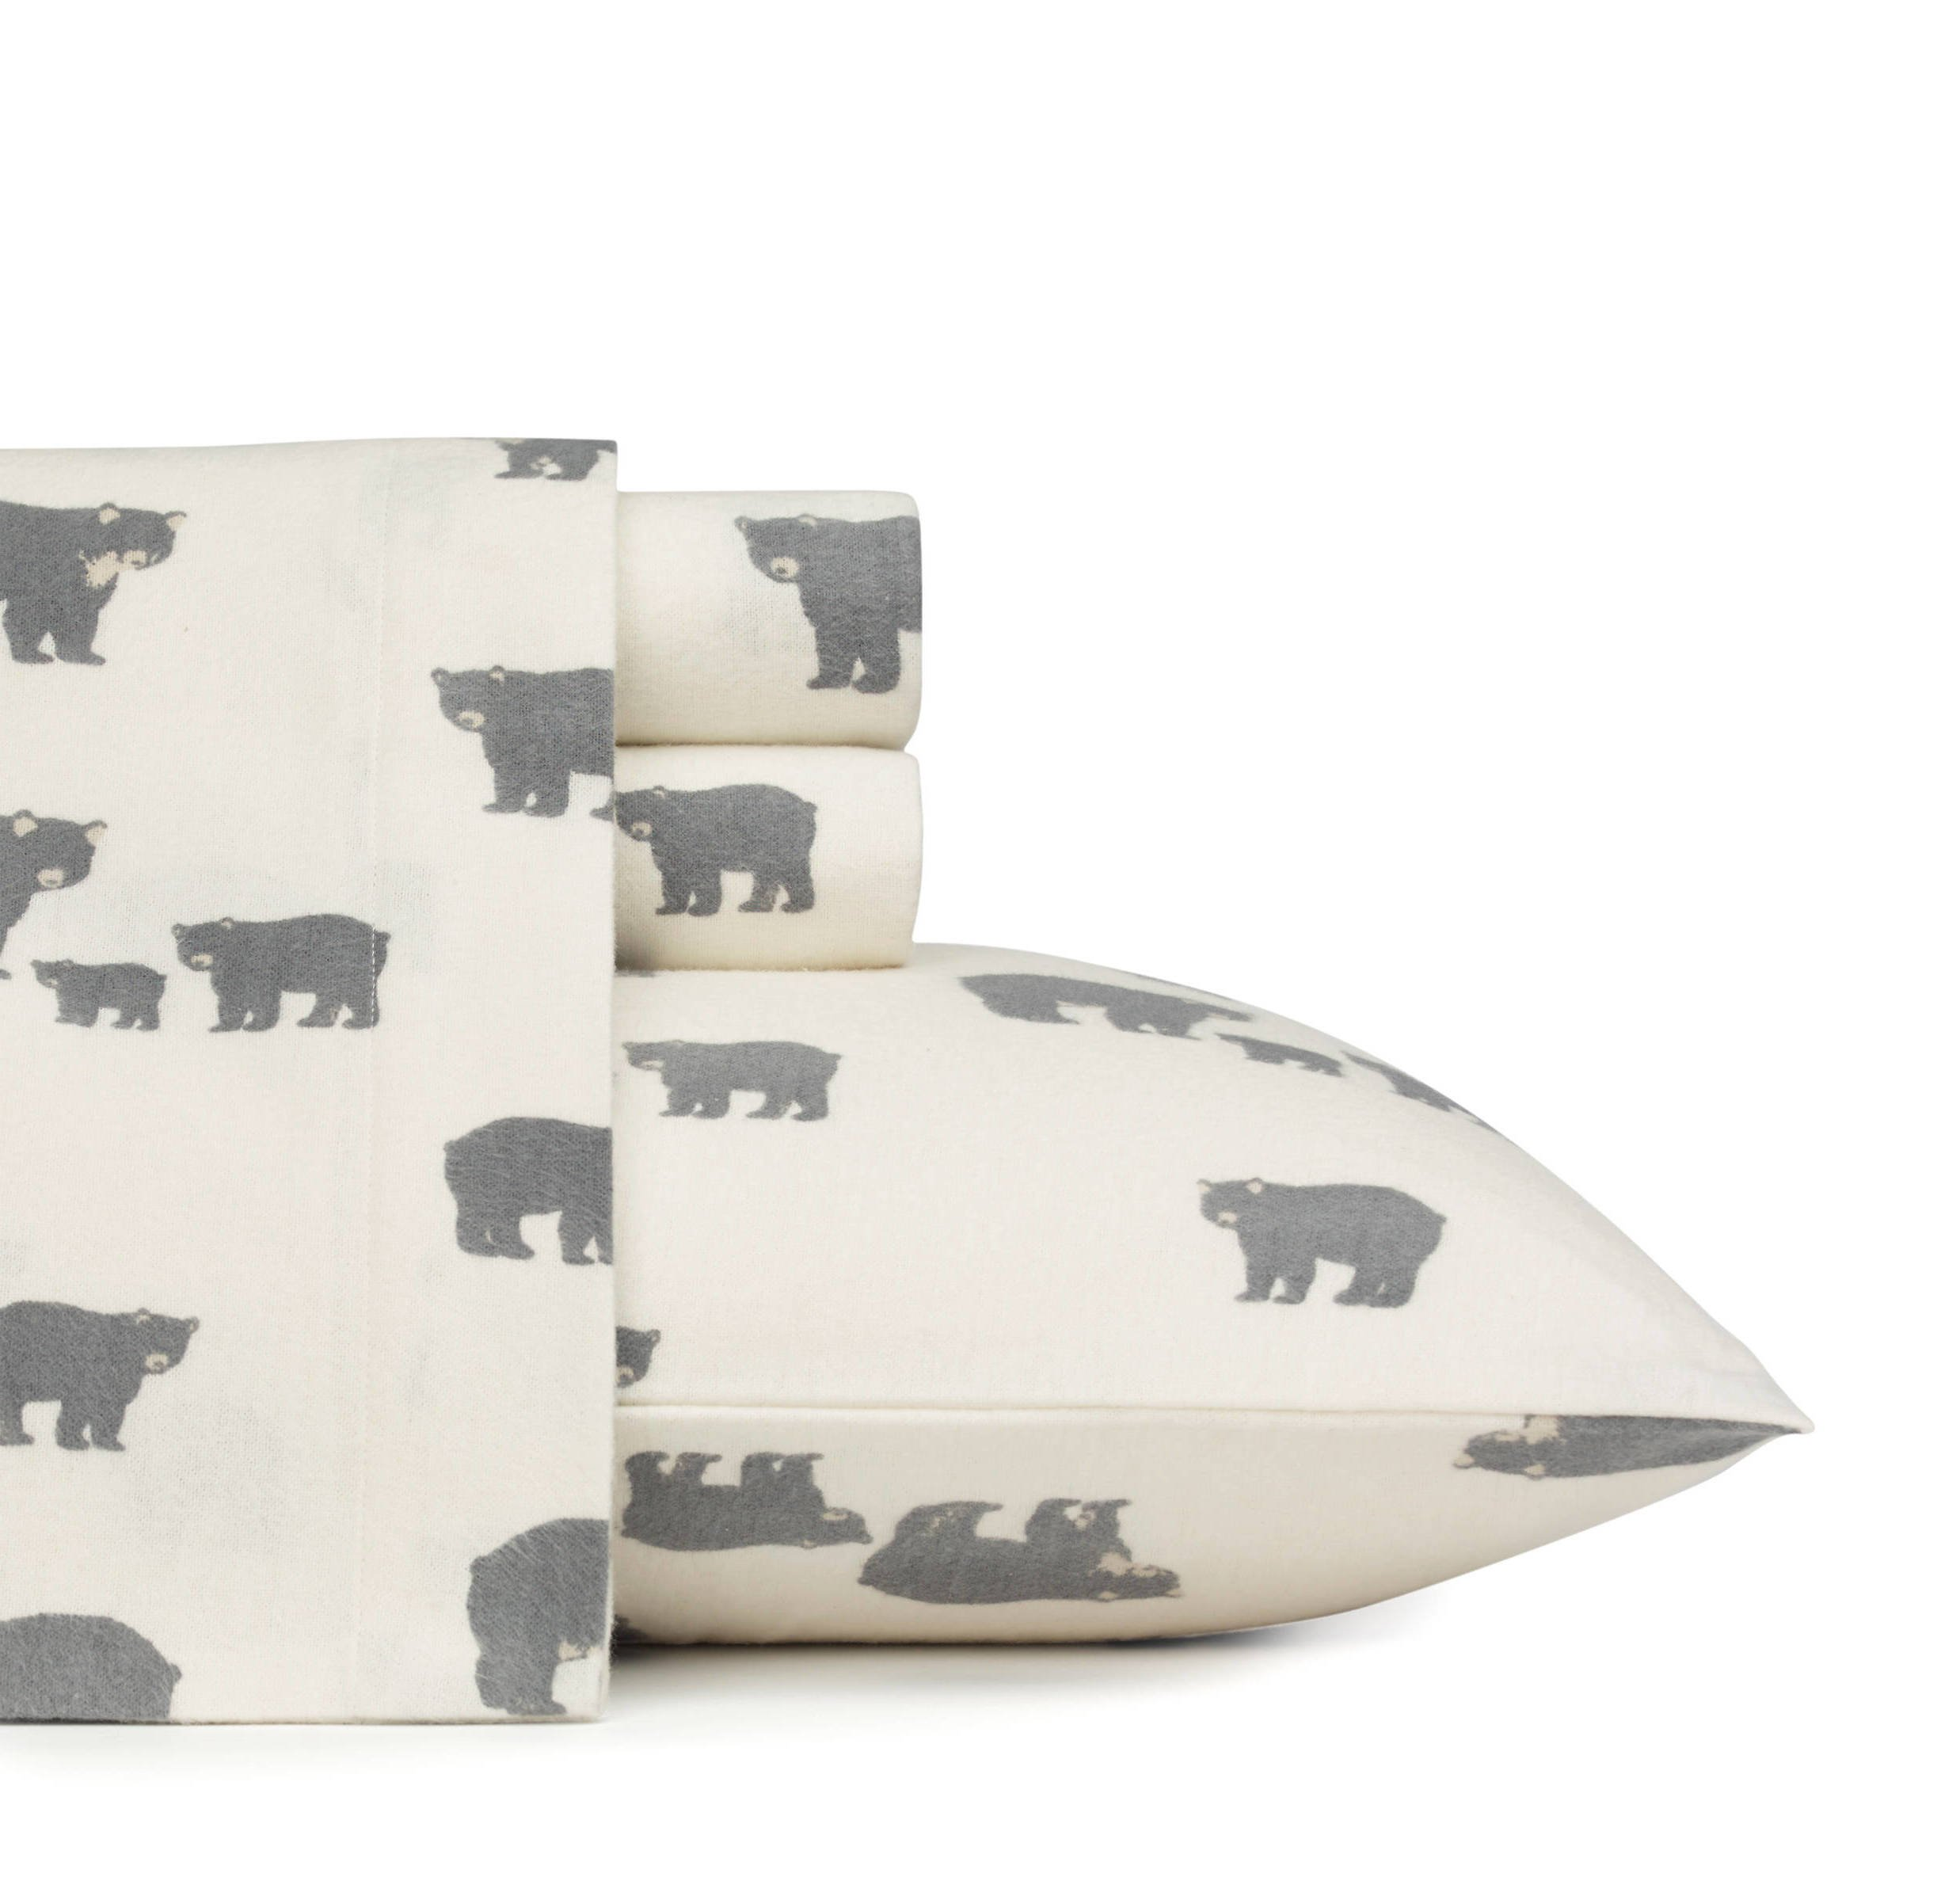 D&A 4 Piece Ivory Cozy Black Wild Bears Theme Sheets Queen Set, Beautiful Animal Lodge Cottage, Southwestern Print, Fully Elasticized Fitted, Deep Pocket, Cotton Flannel